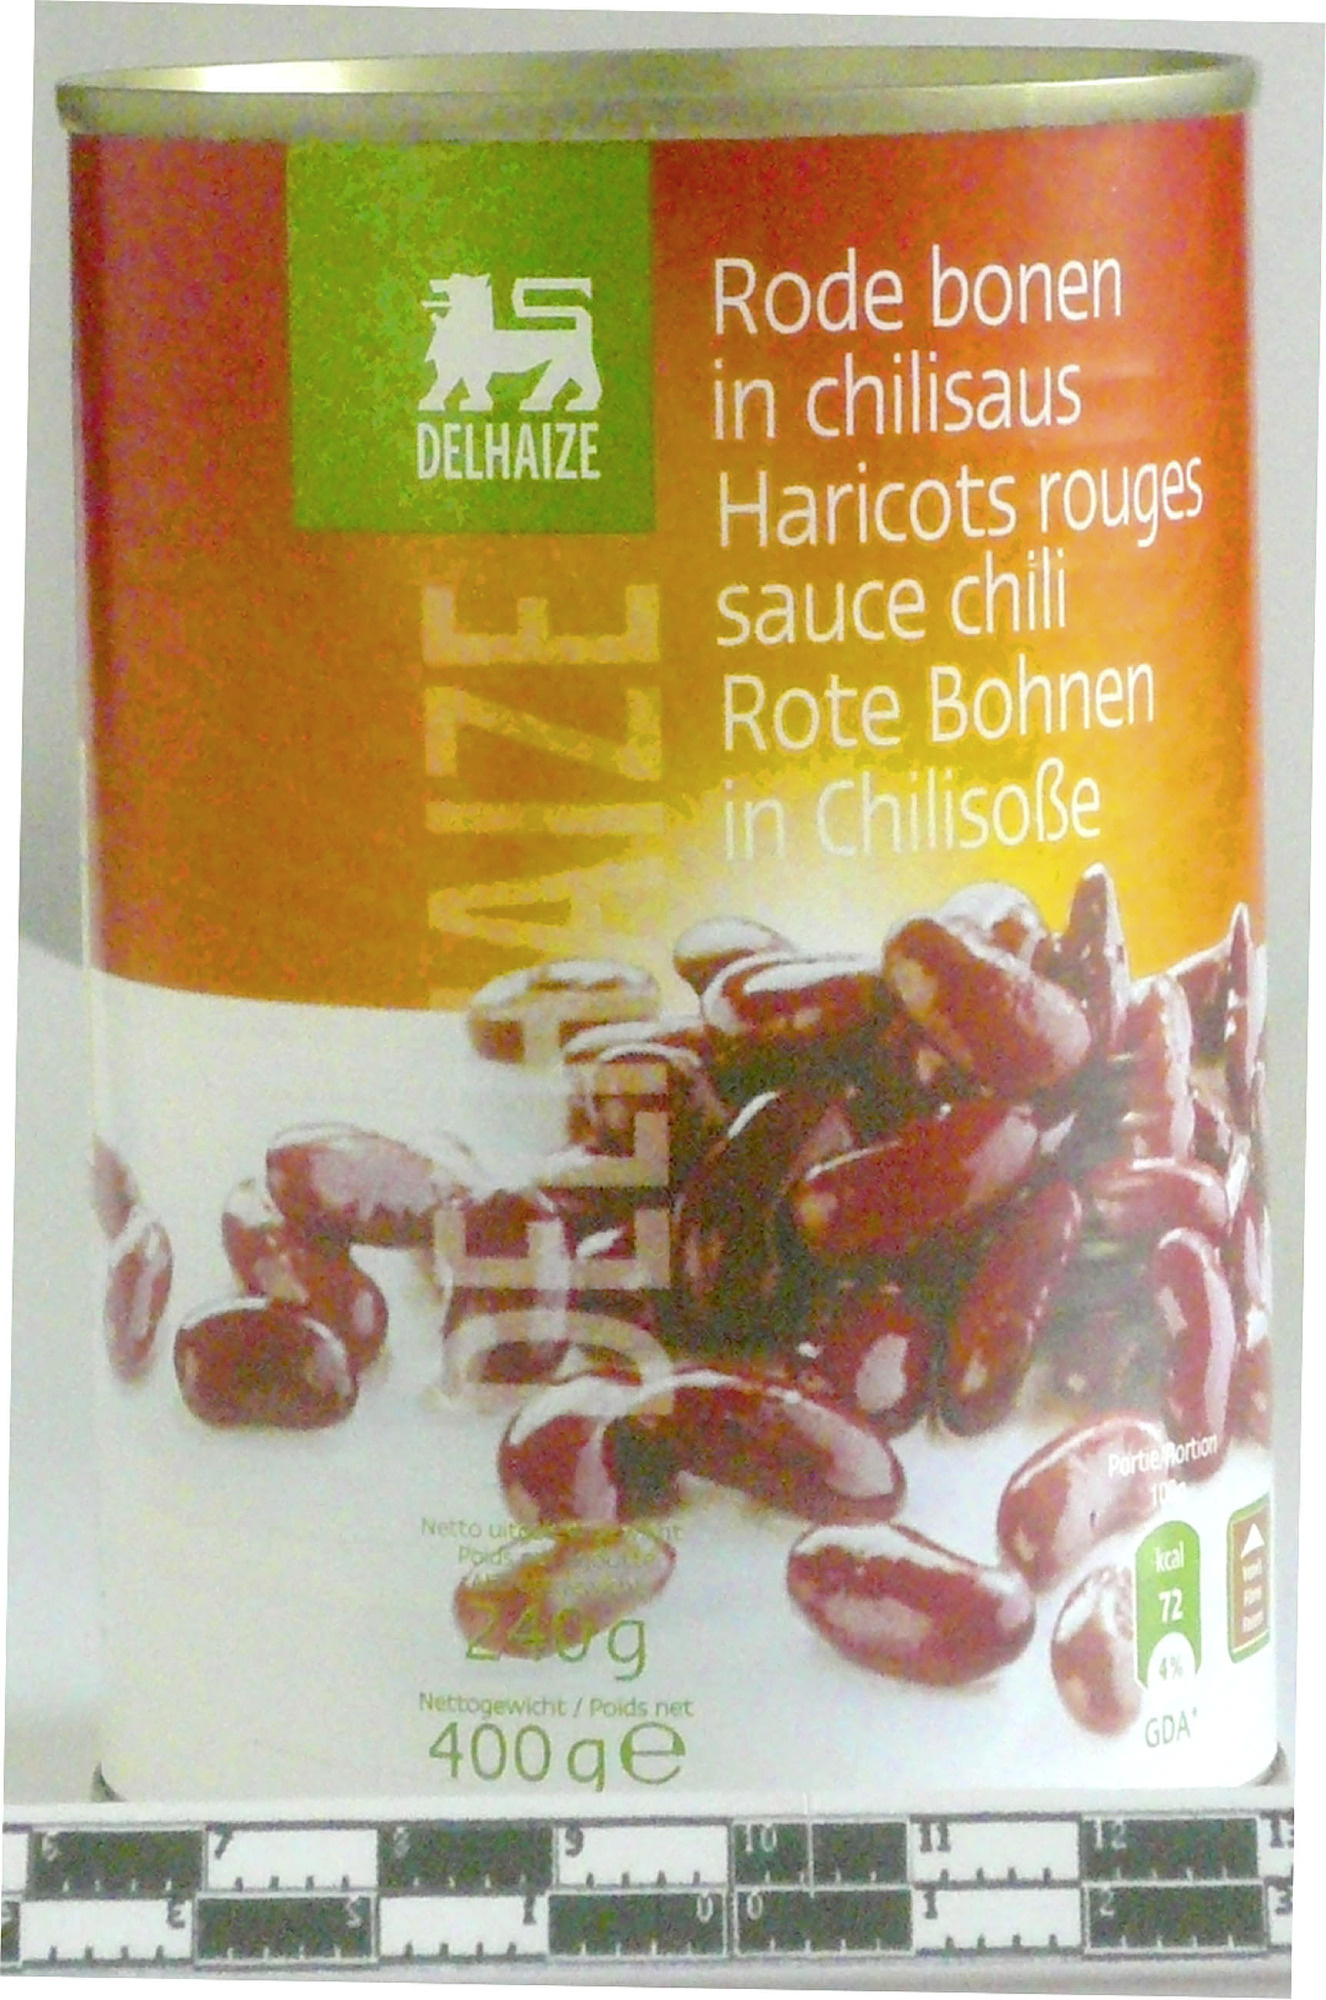 Haricots rouges sauce chili - Product - fr